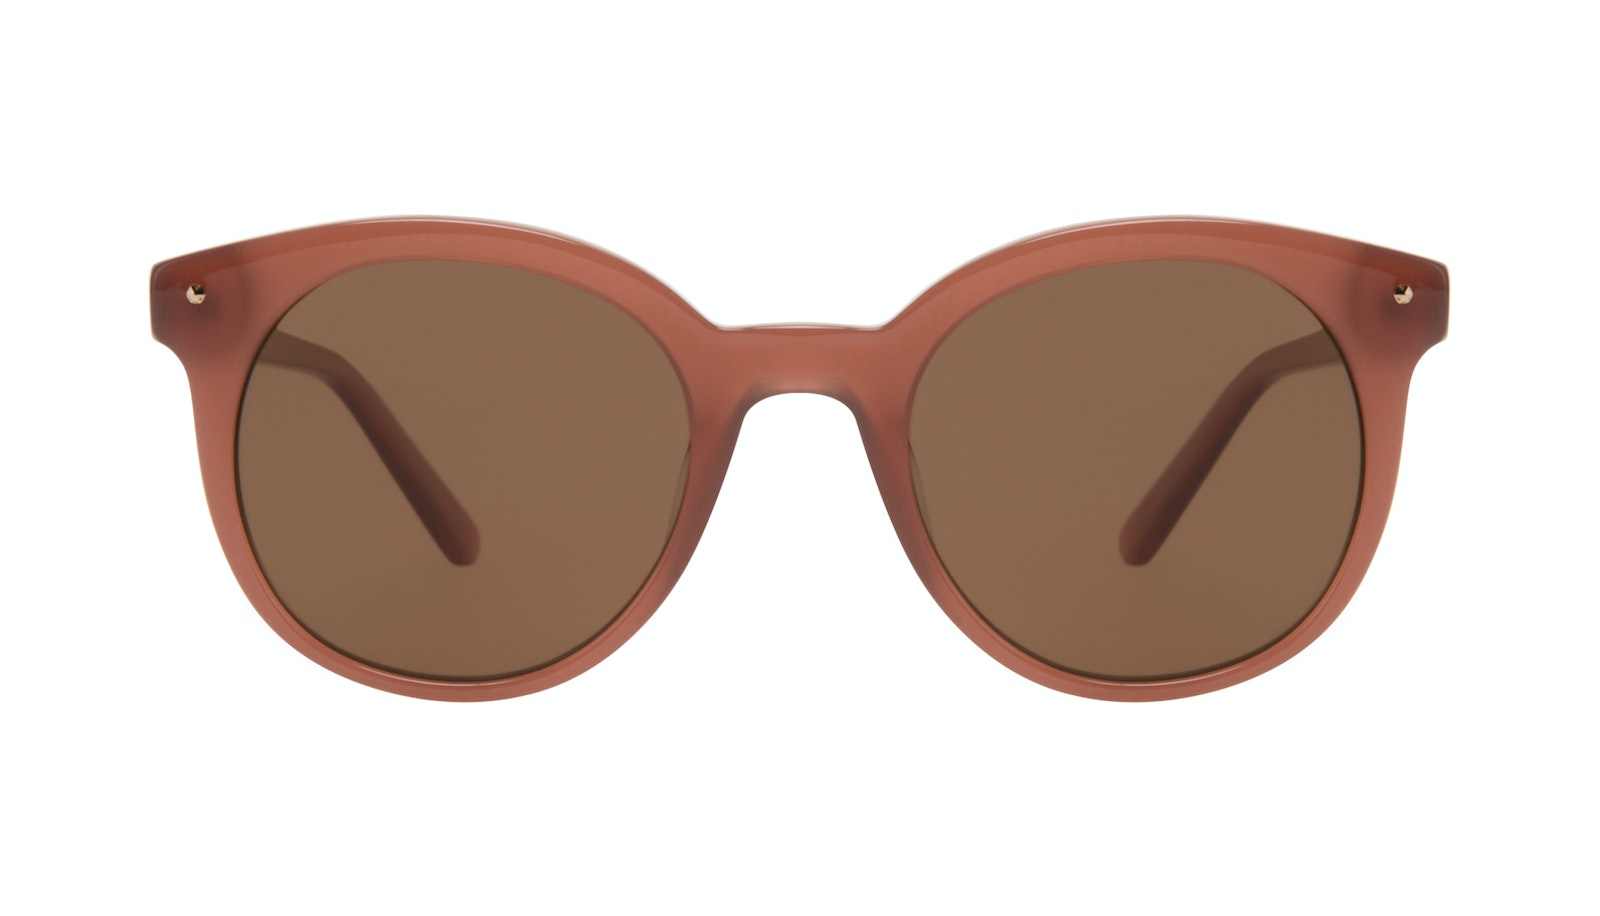 Affordable Fashion Glasses Round Sunglasses Women Hip Toffee